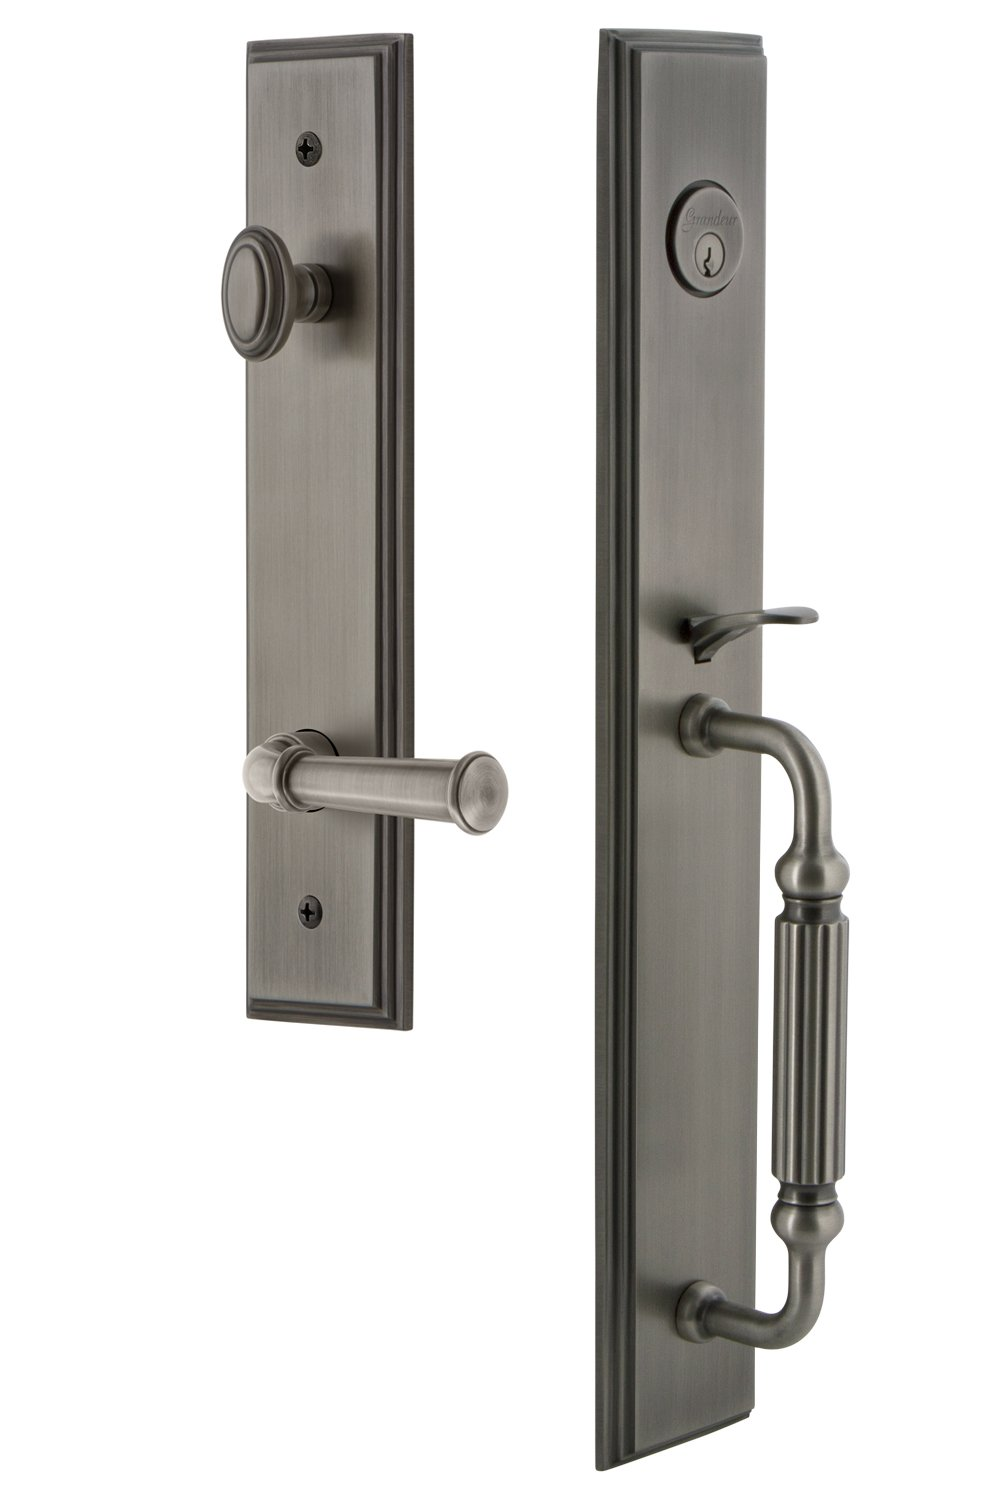 Grandeur 849890 Hardware Carre One-Piece Dummy Handleset with F Grip and Georgetown Lever in Antique Pewter Grandeur Hardware